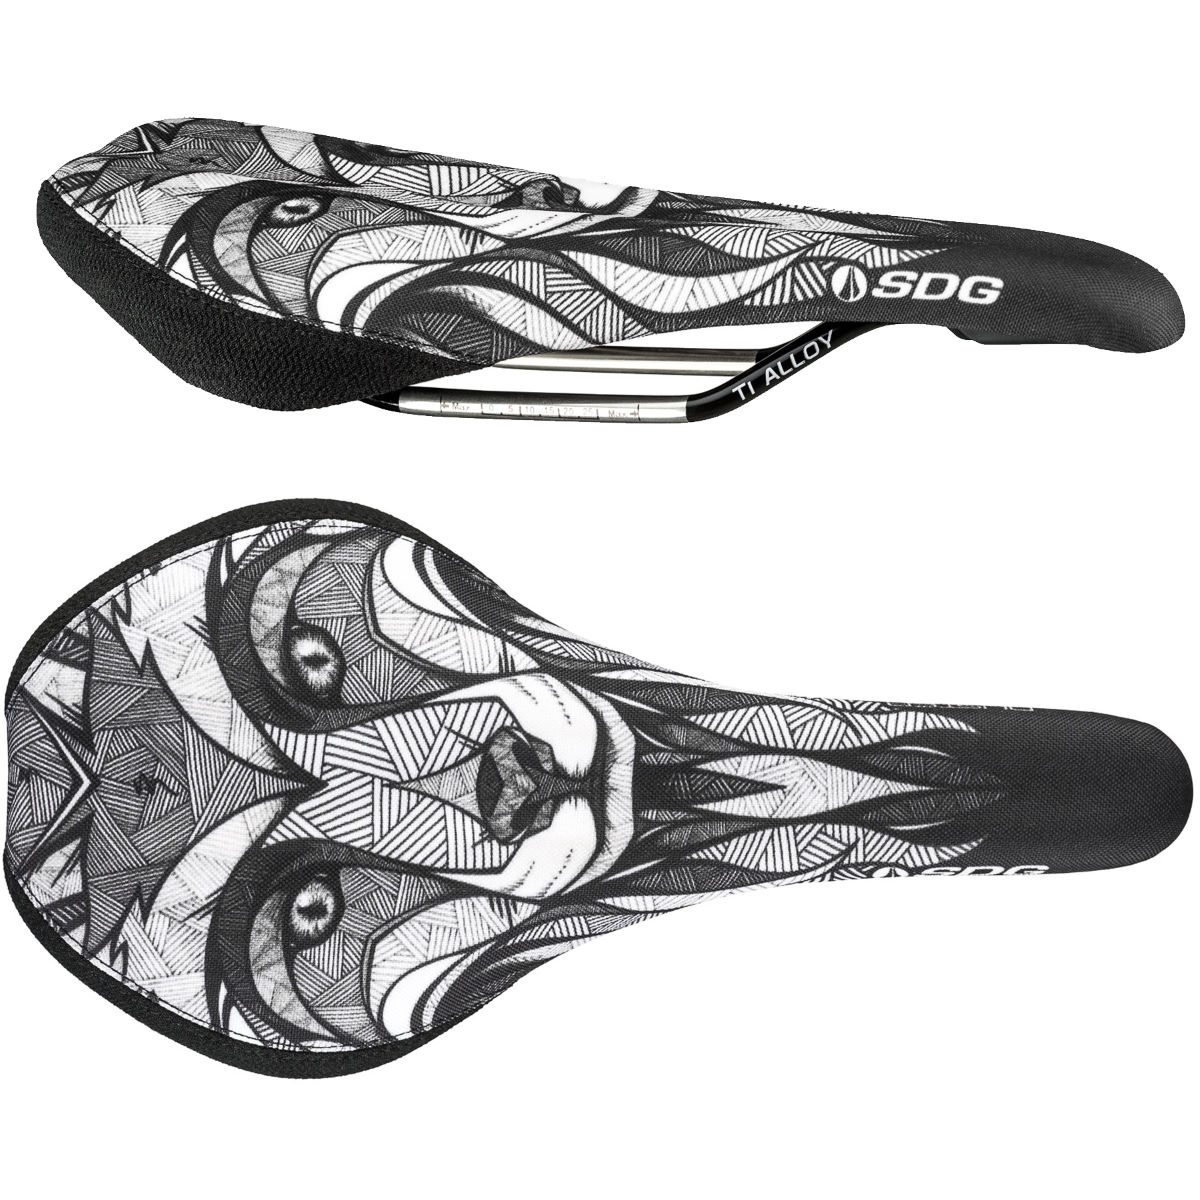 SDG Duster P Mtn Ti-Alloy Saddle - Sillines